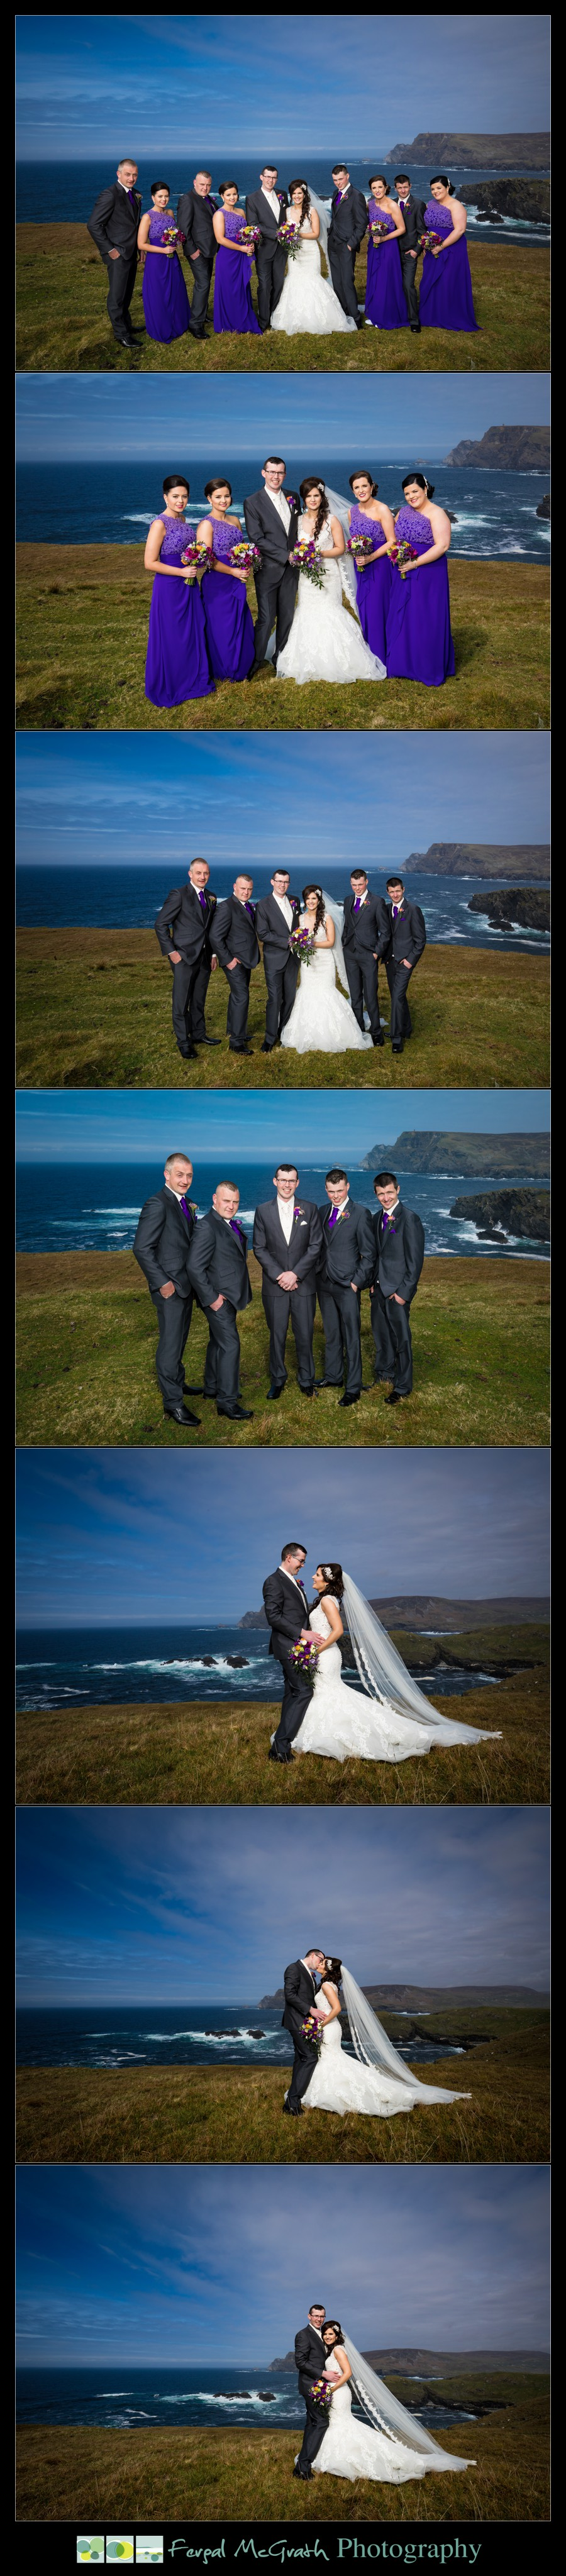 Glencolmcille wedding amazing wedding photos taken at glencolmcille head in county donegal ireland